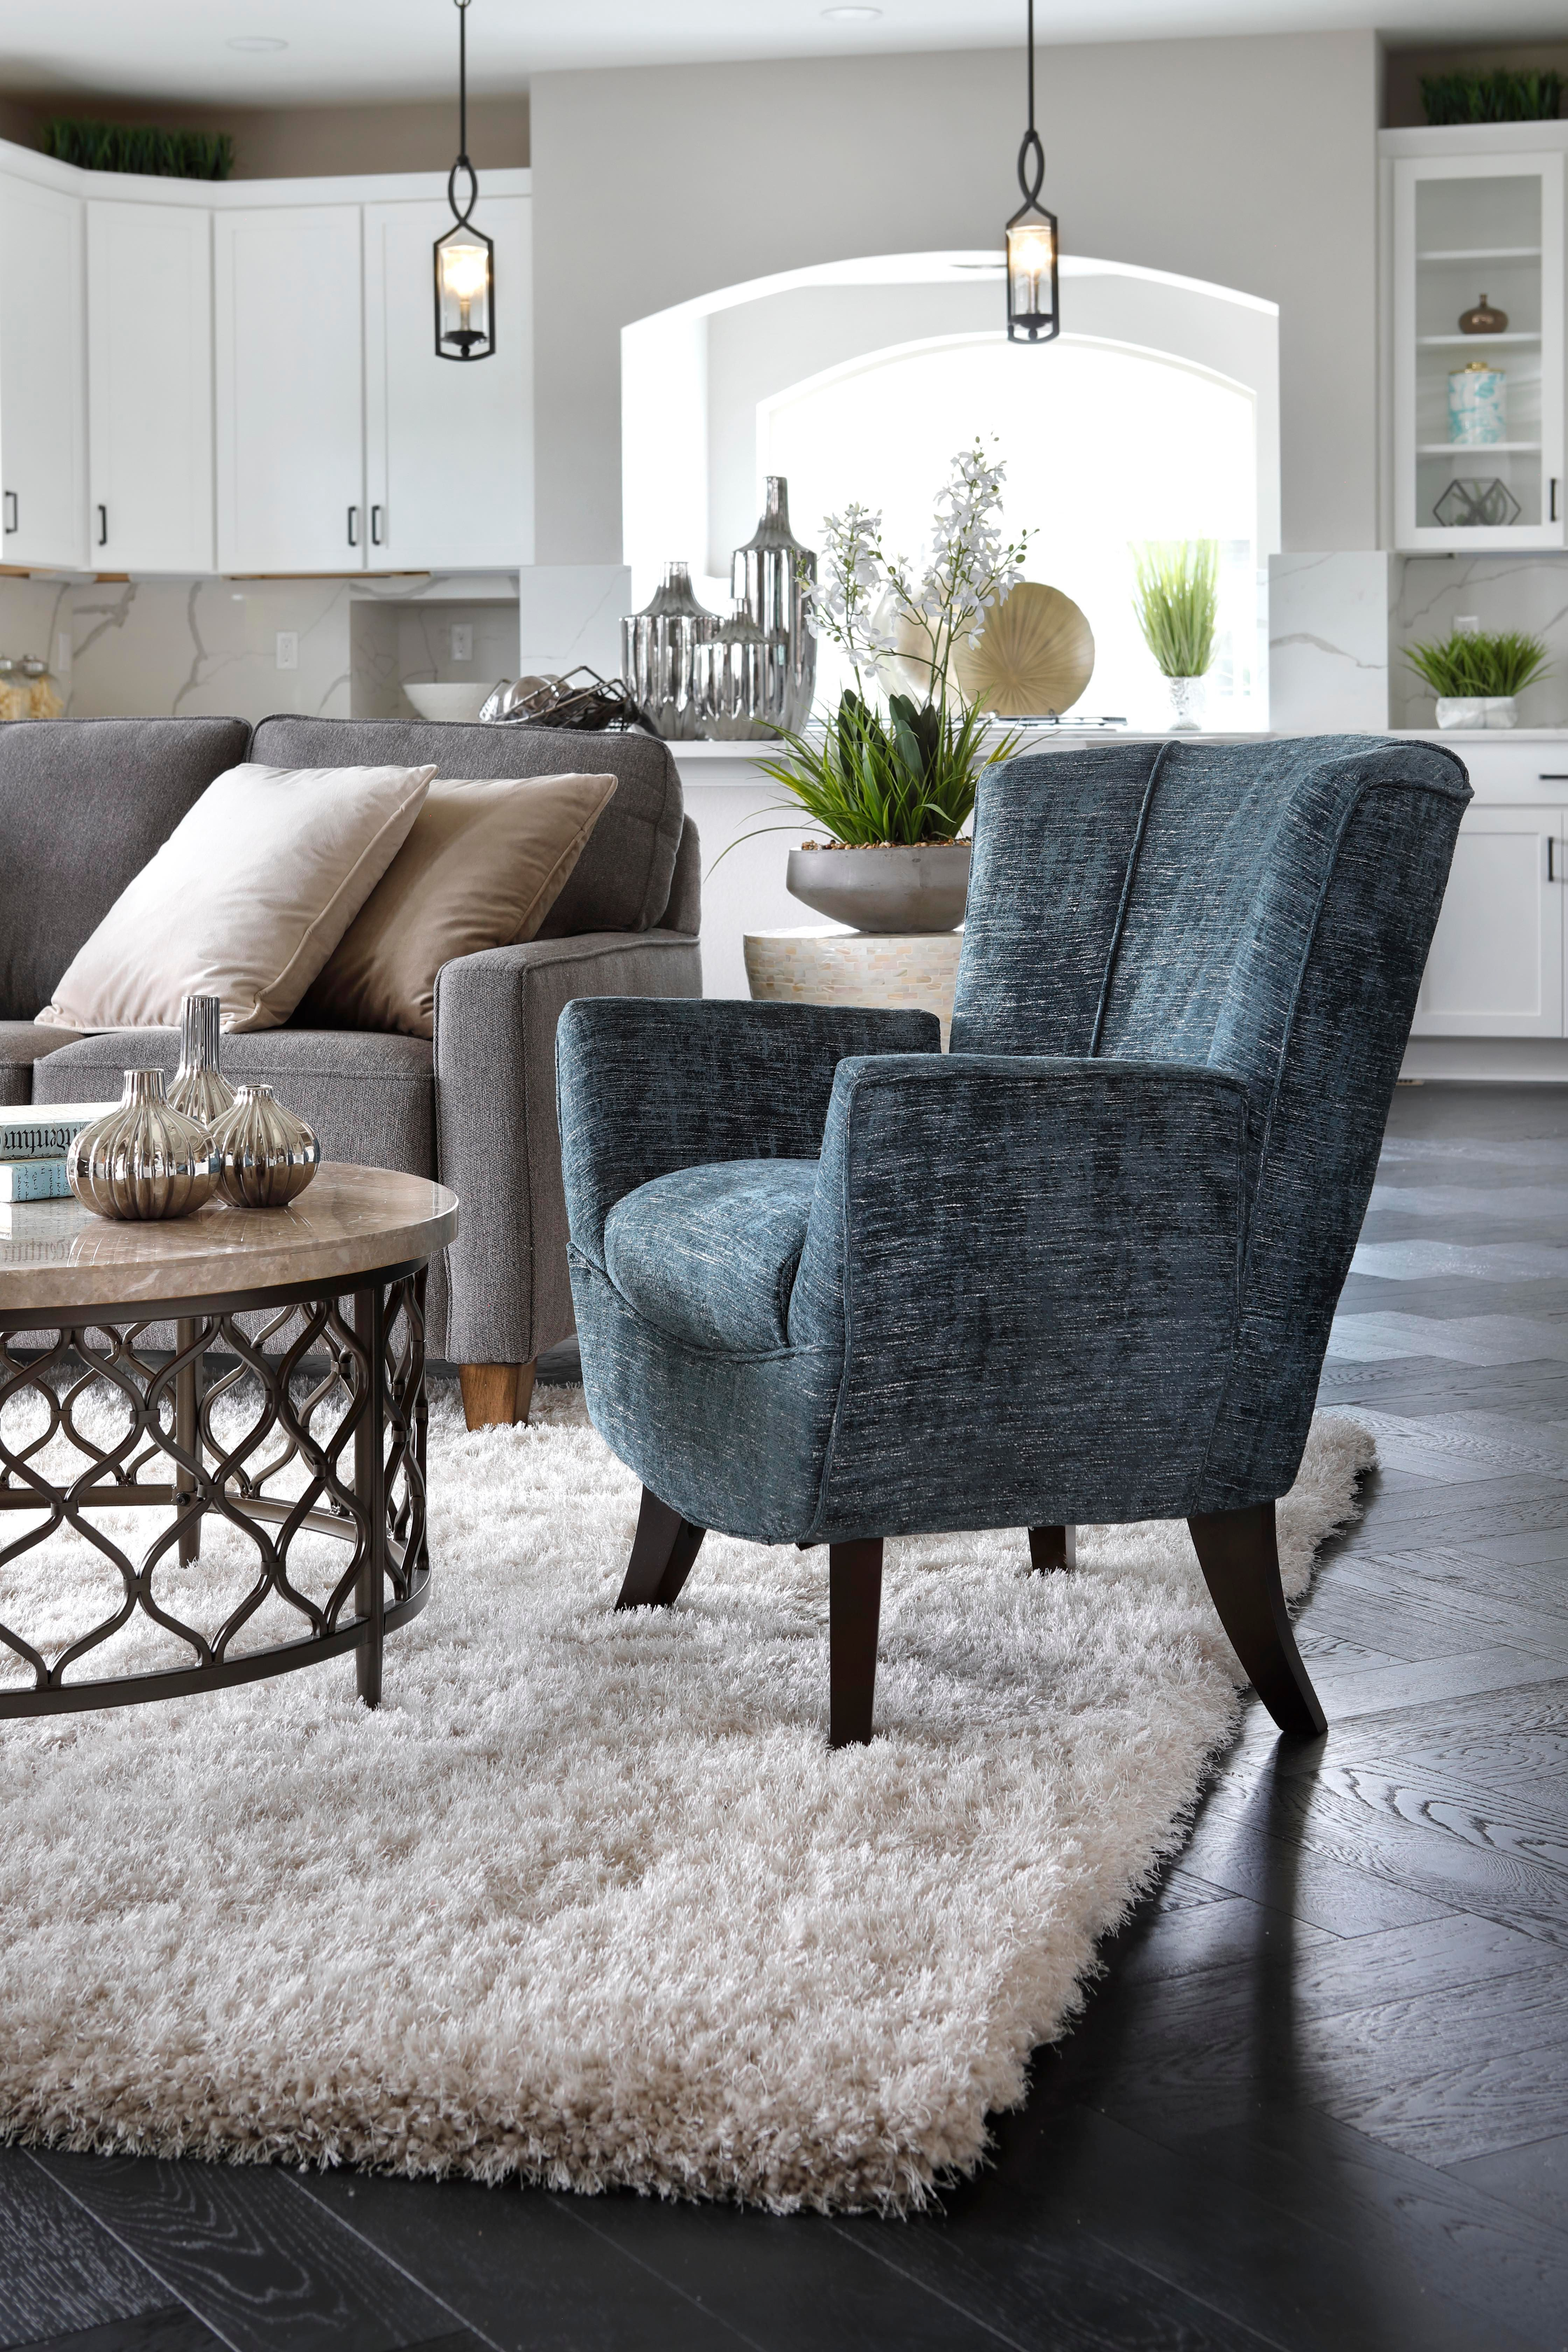 Wondrous Beautiful Ii Club Chair Living Room In 2019 Home Living Home Interior And Landscaping Thycampuscom